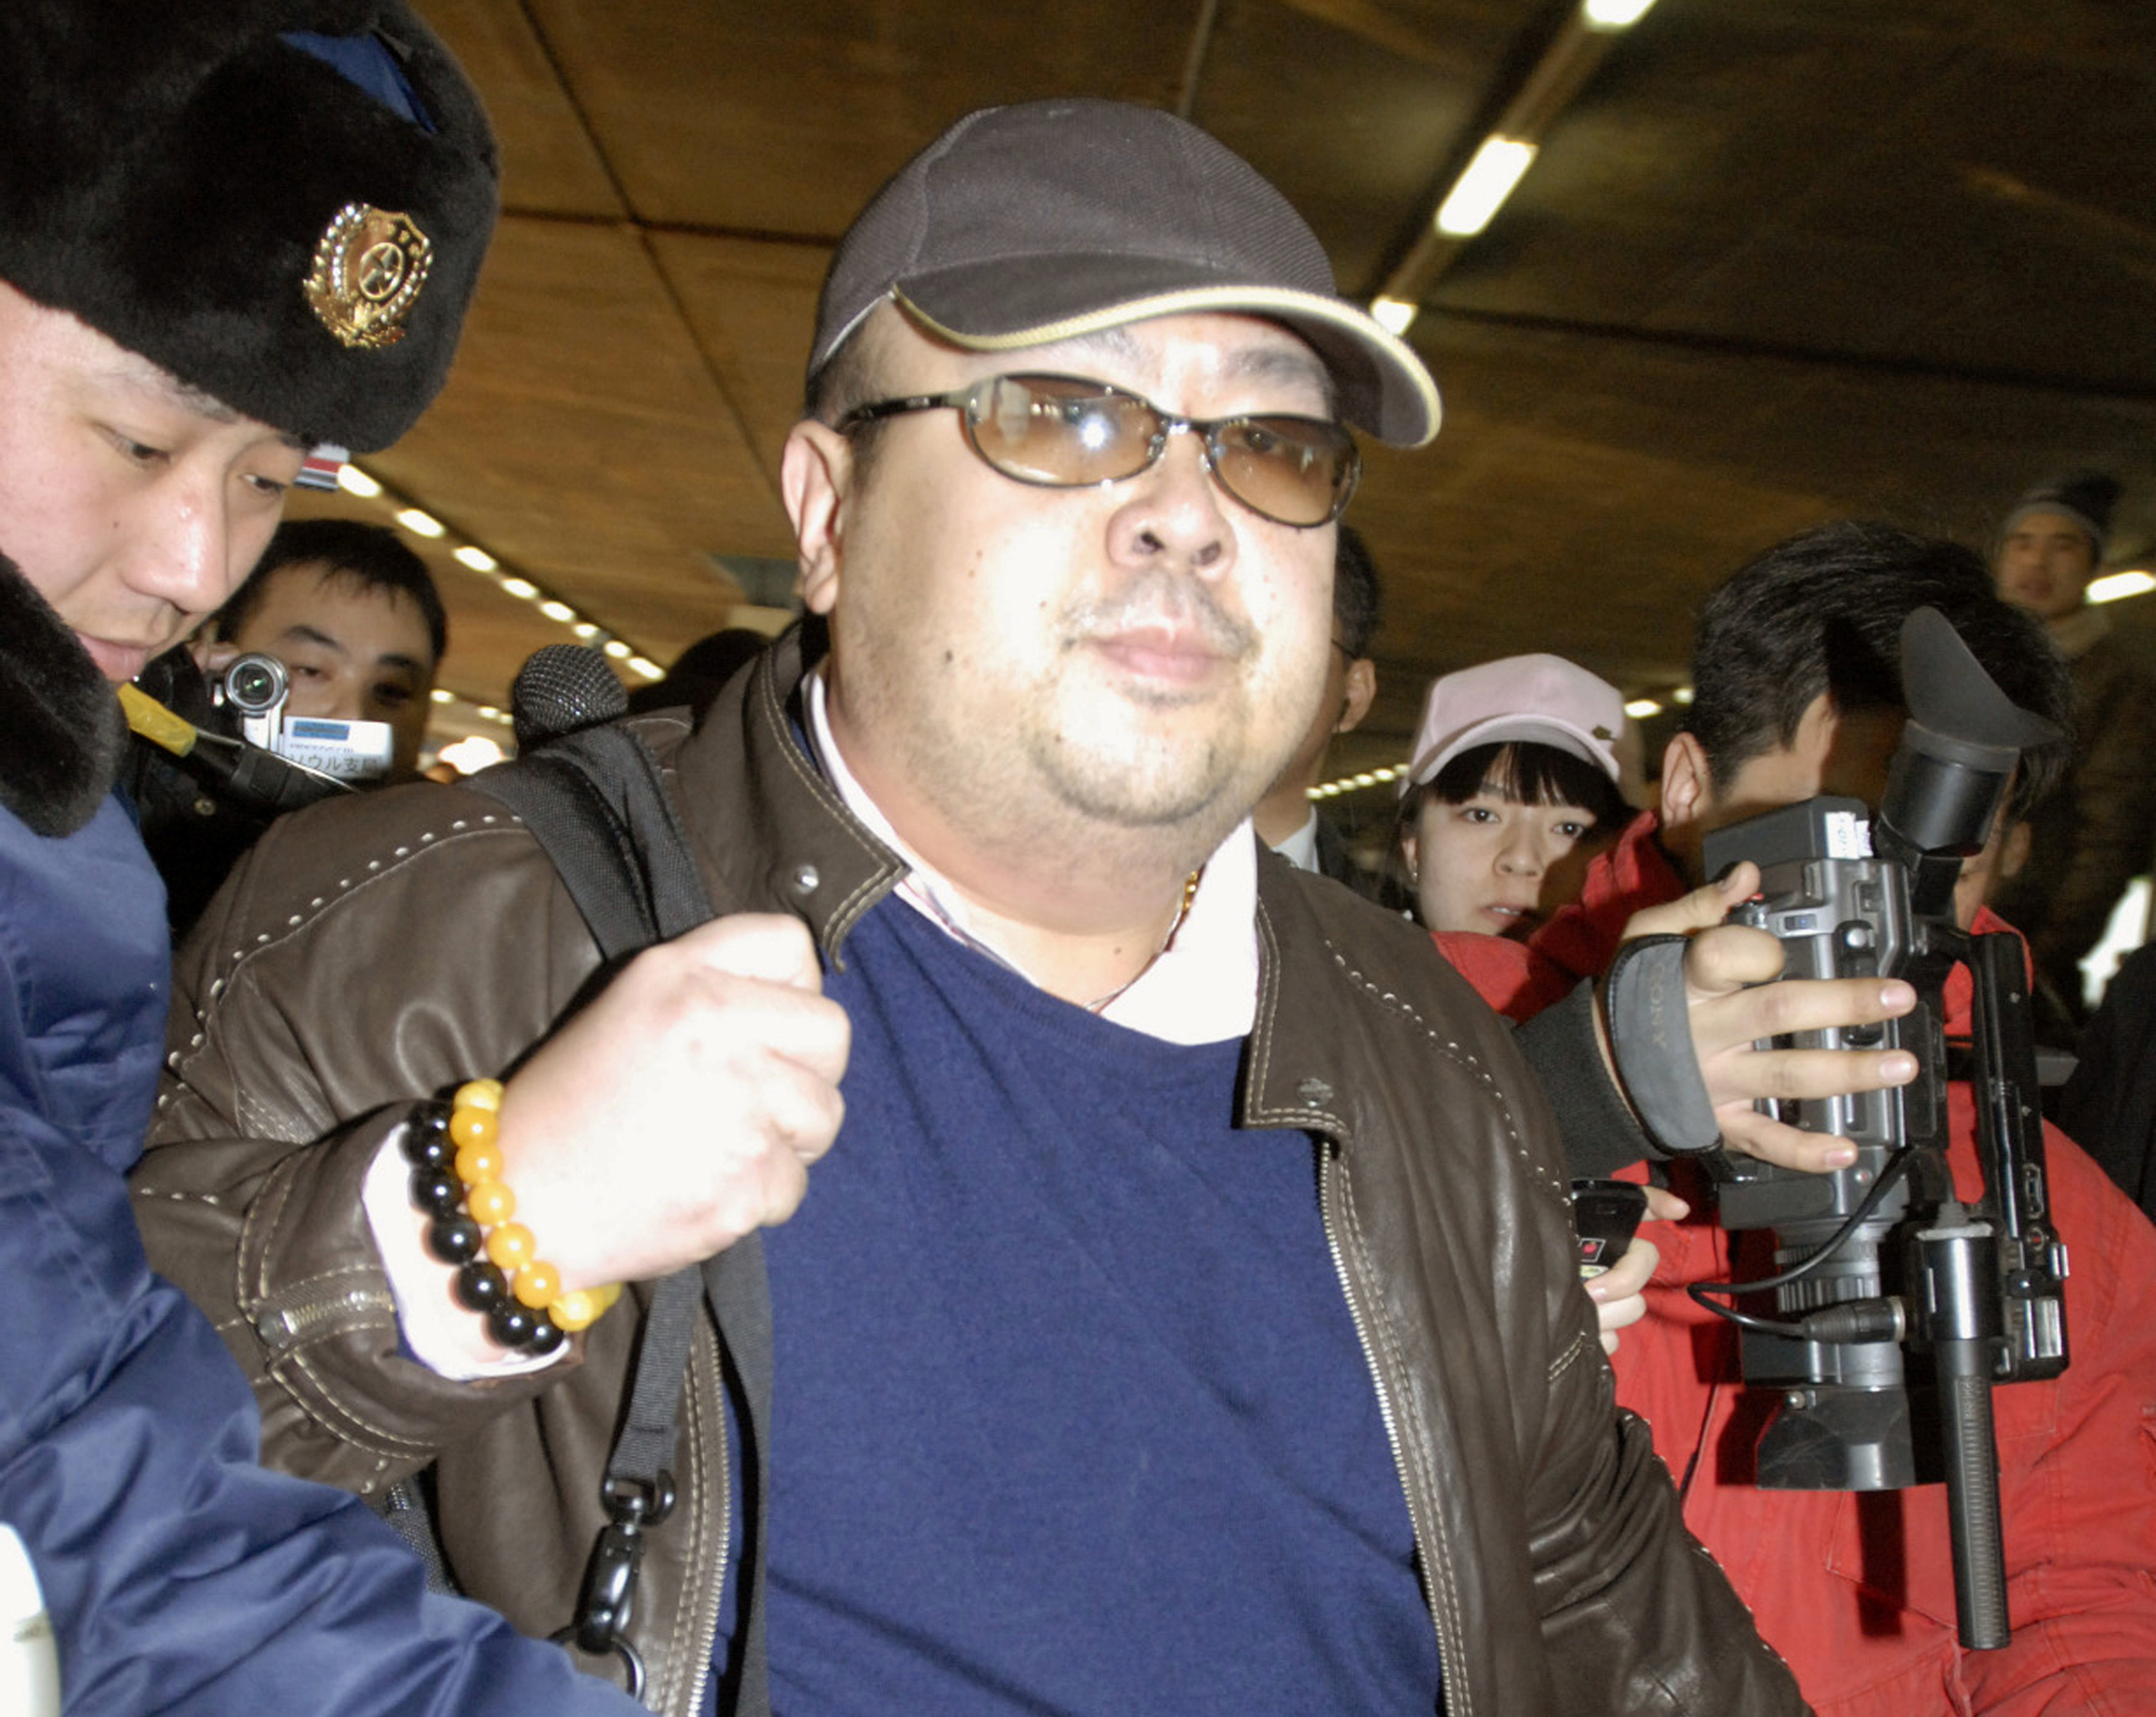 Kim Jong Nam arrives at Beijing airport in Beijing, China, in this photo taken by Kyodo February 11, 2007. Picture taken February 11, 2007. Kyodo/via REUTERS